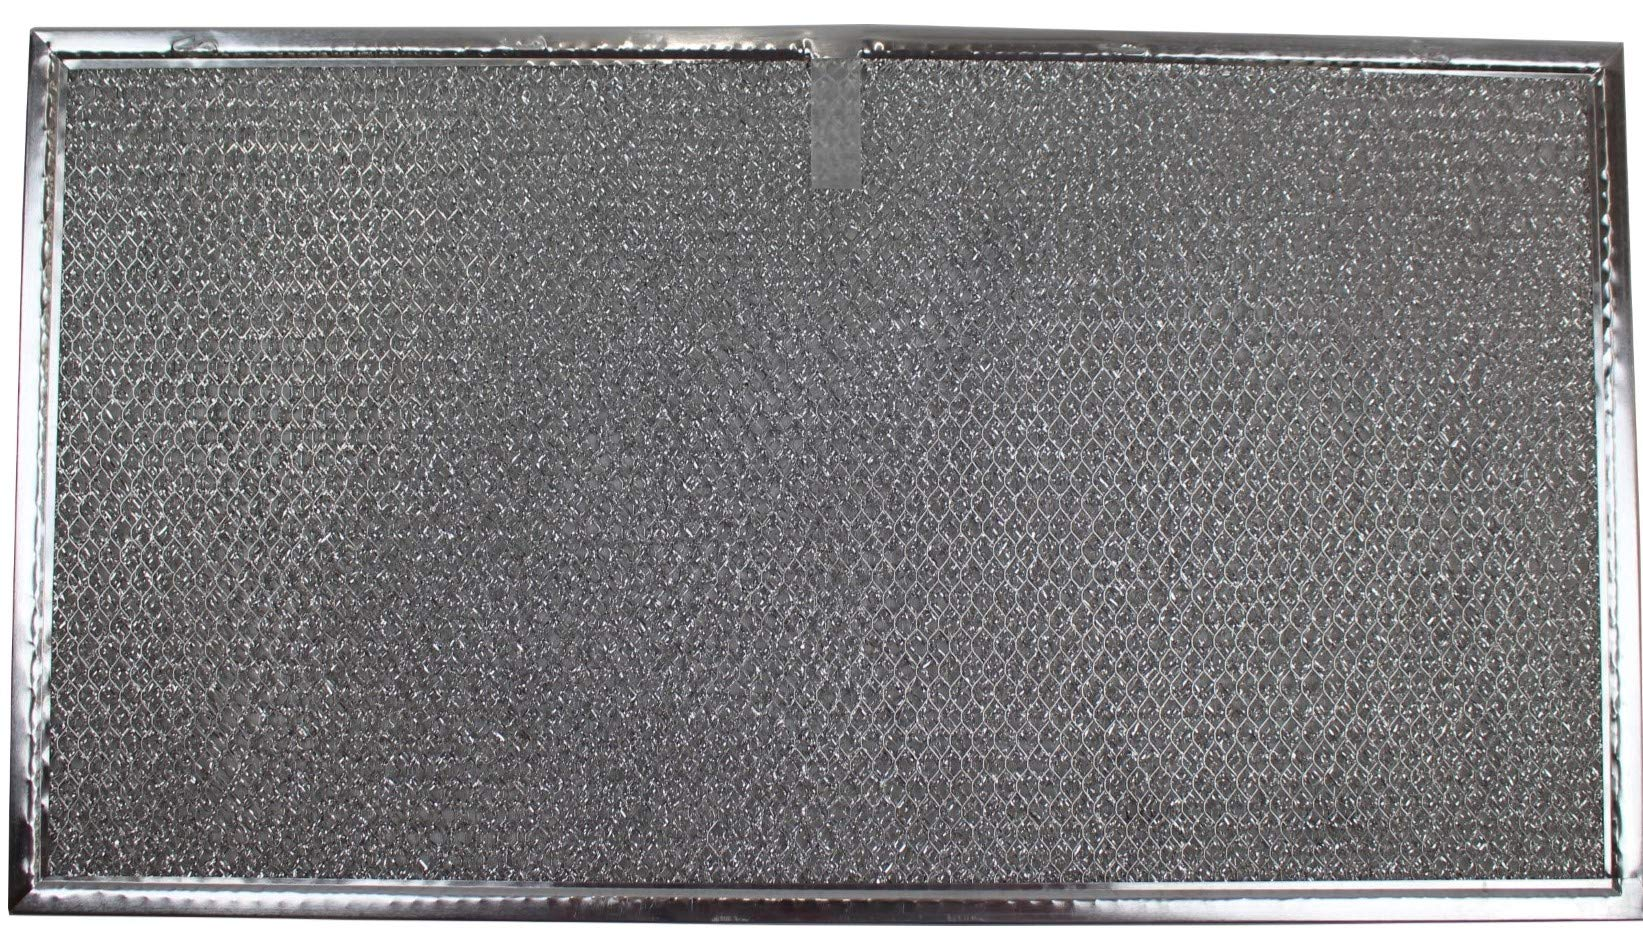 Replacement Aluminum Range Filter Compatible With GE WB2X7846,G 8172,RHF0867   8 1/4 x 16 1/4 x 3/32